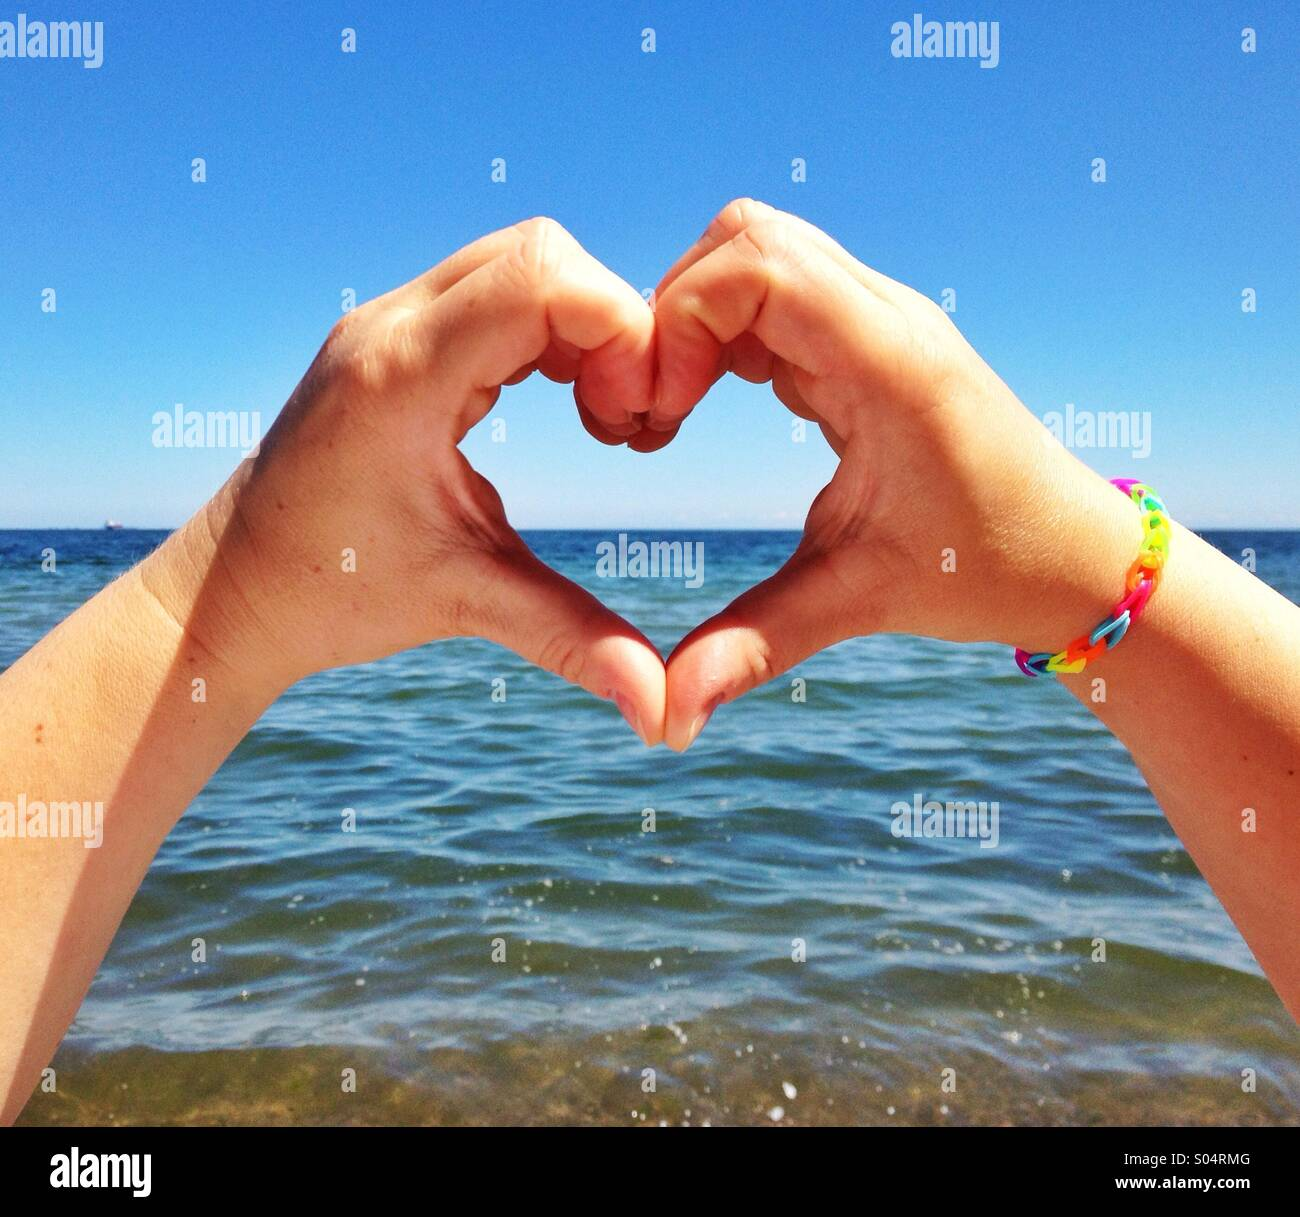 Hands heart shape against the sea - Stock Image